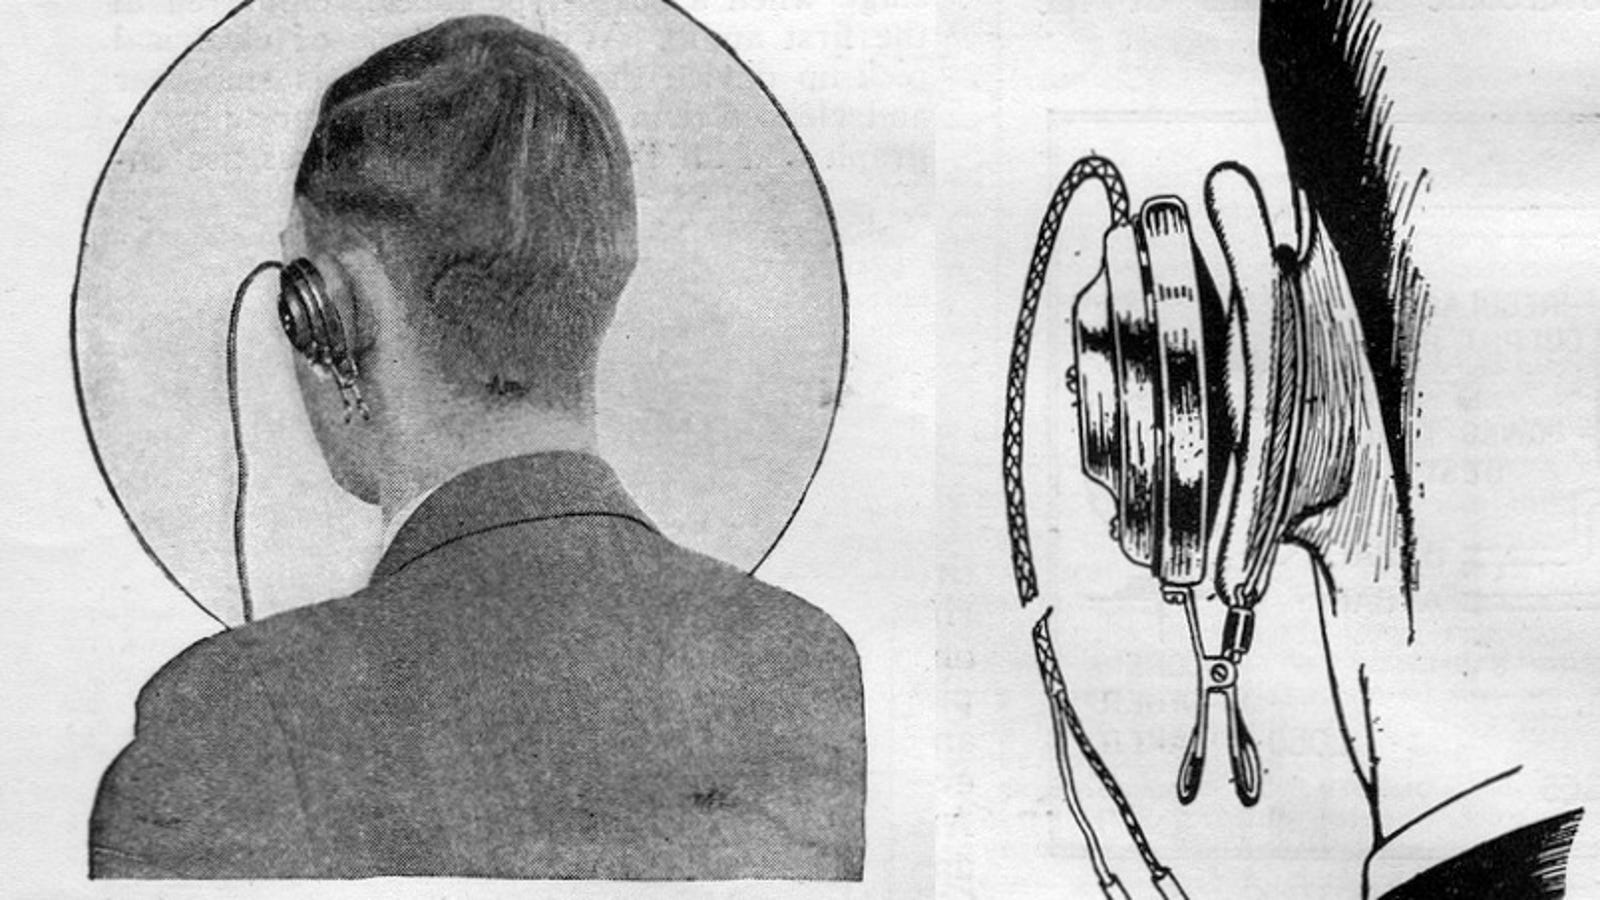 earbuds volume slider - These Headphones From 1927 Look So Much Worse Than Earbuds